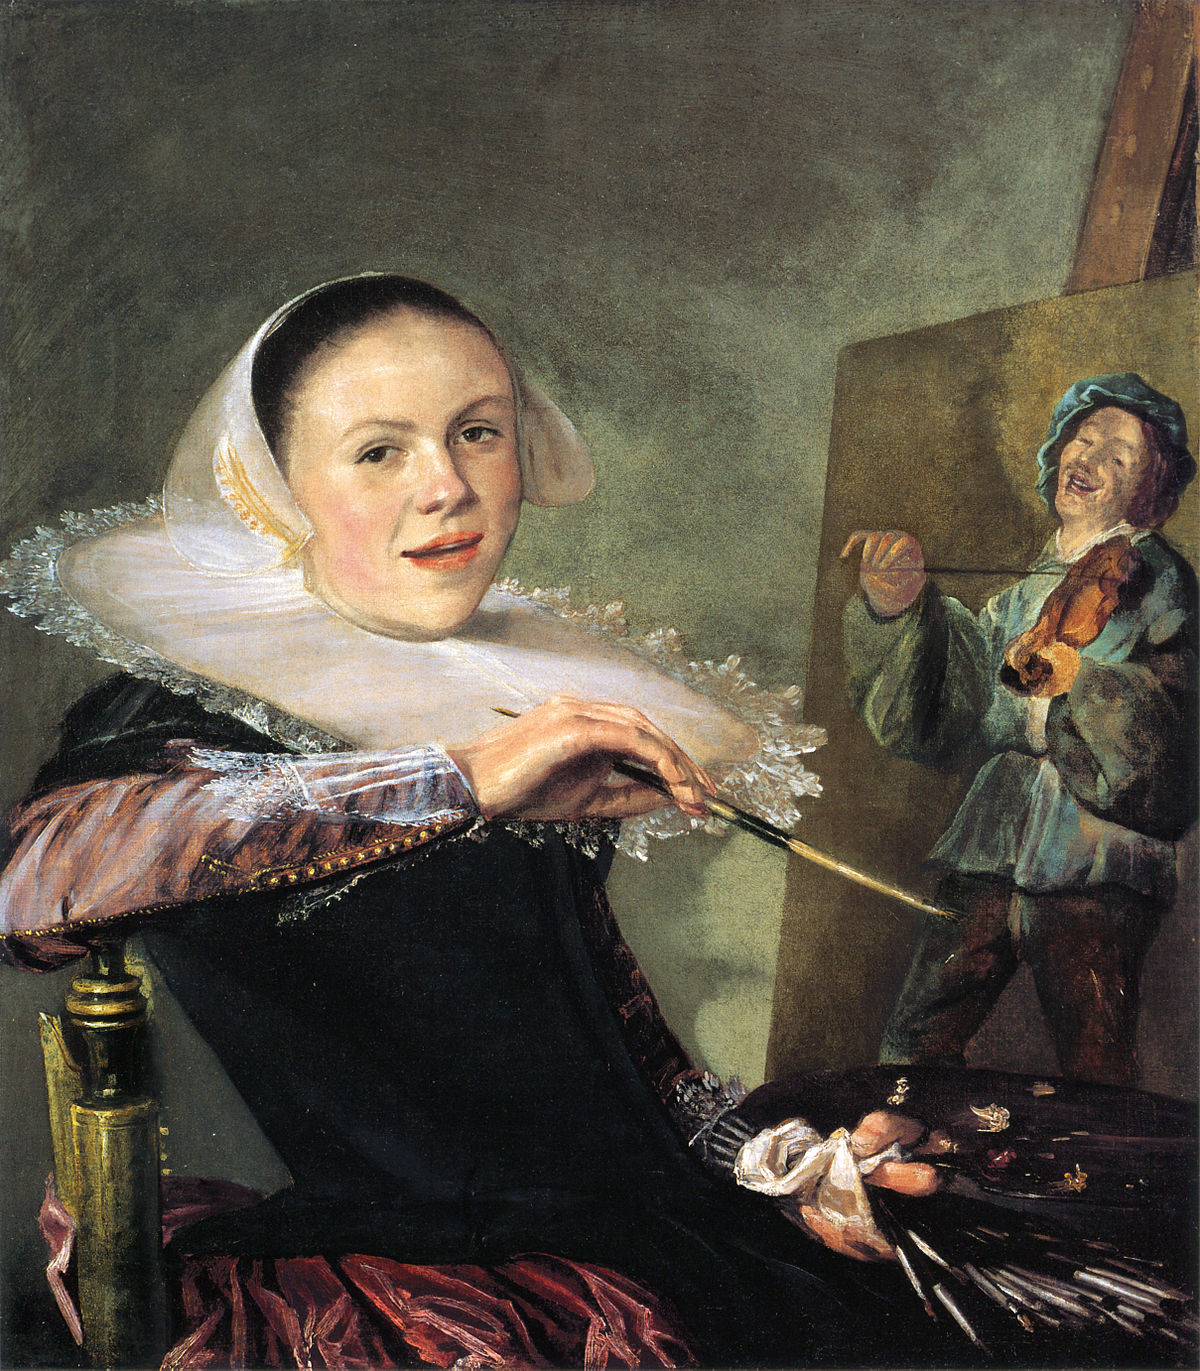 Judith Leyster, Self-portrait